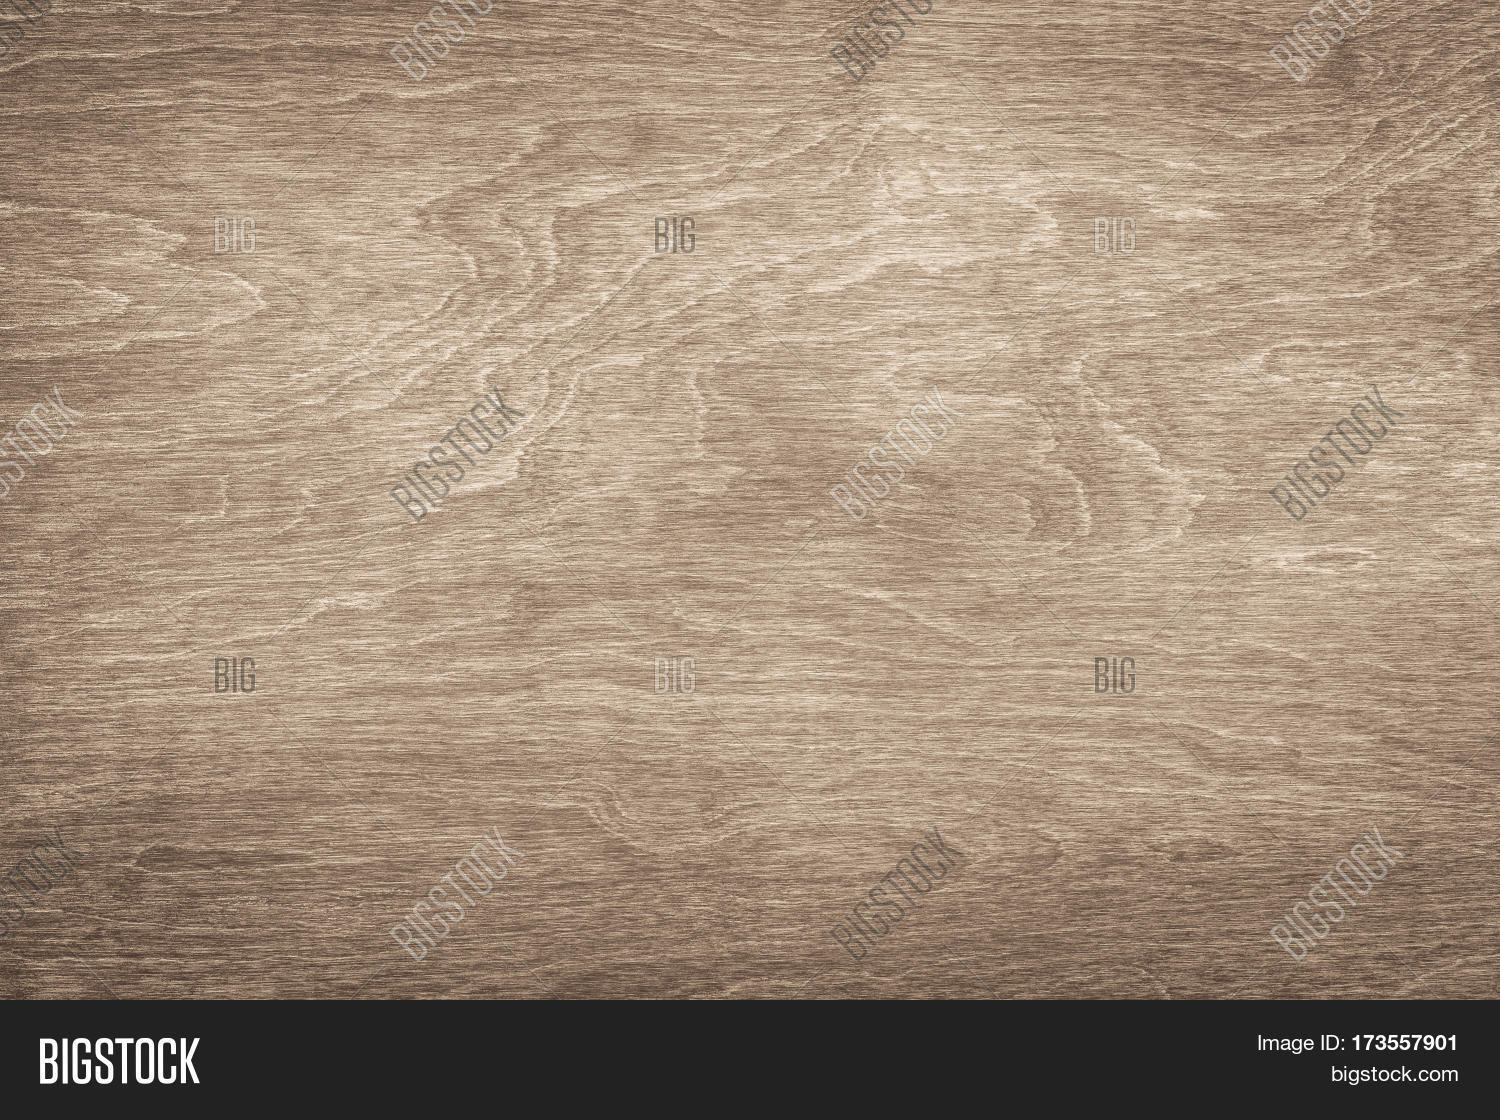 Light wood texture - Light Wood Texture Background Surface Wood Table Surface Top View Vintage Wood Texture Background